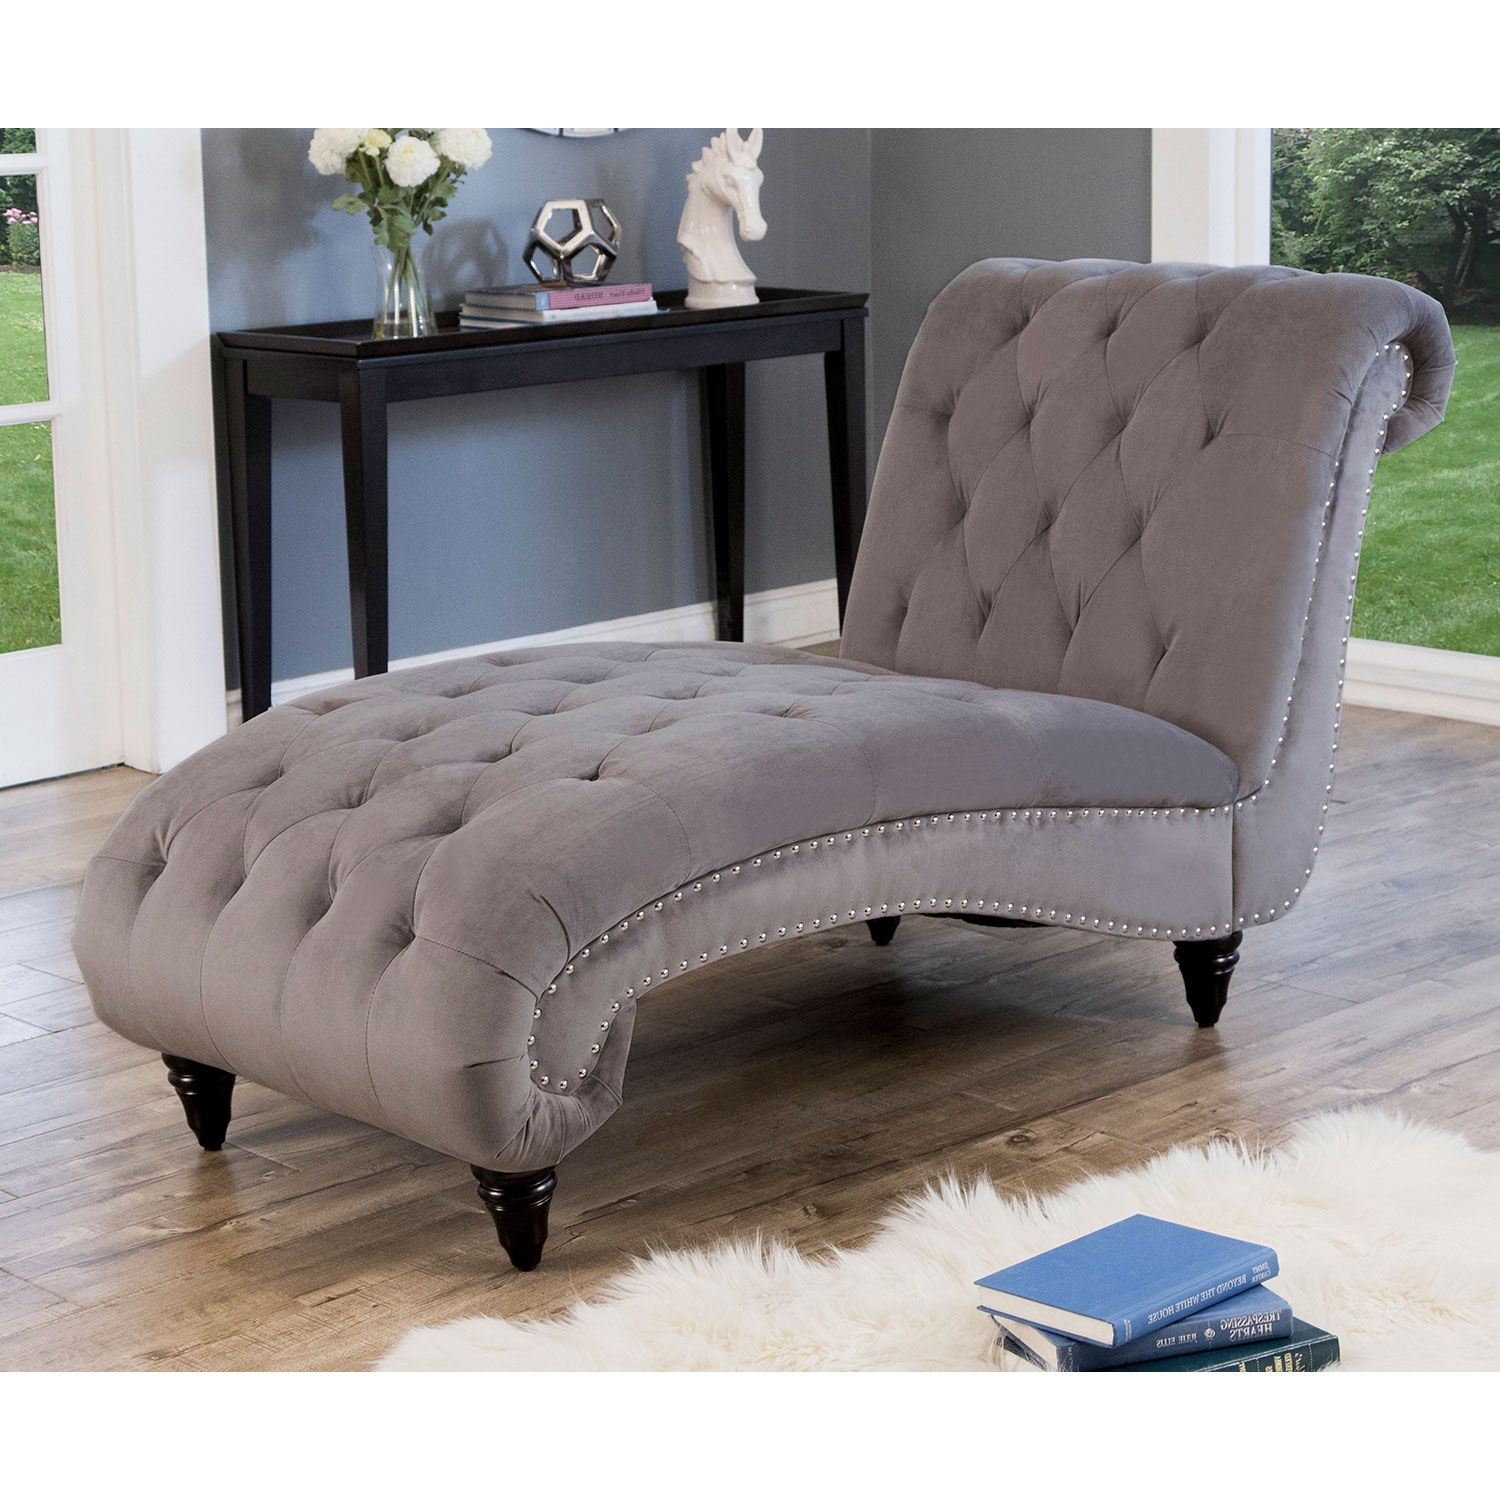 chaise lounge love  amazing fainting couches - chaise lounge love